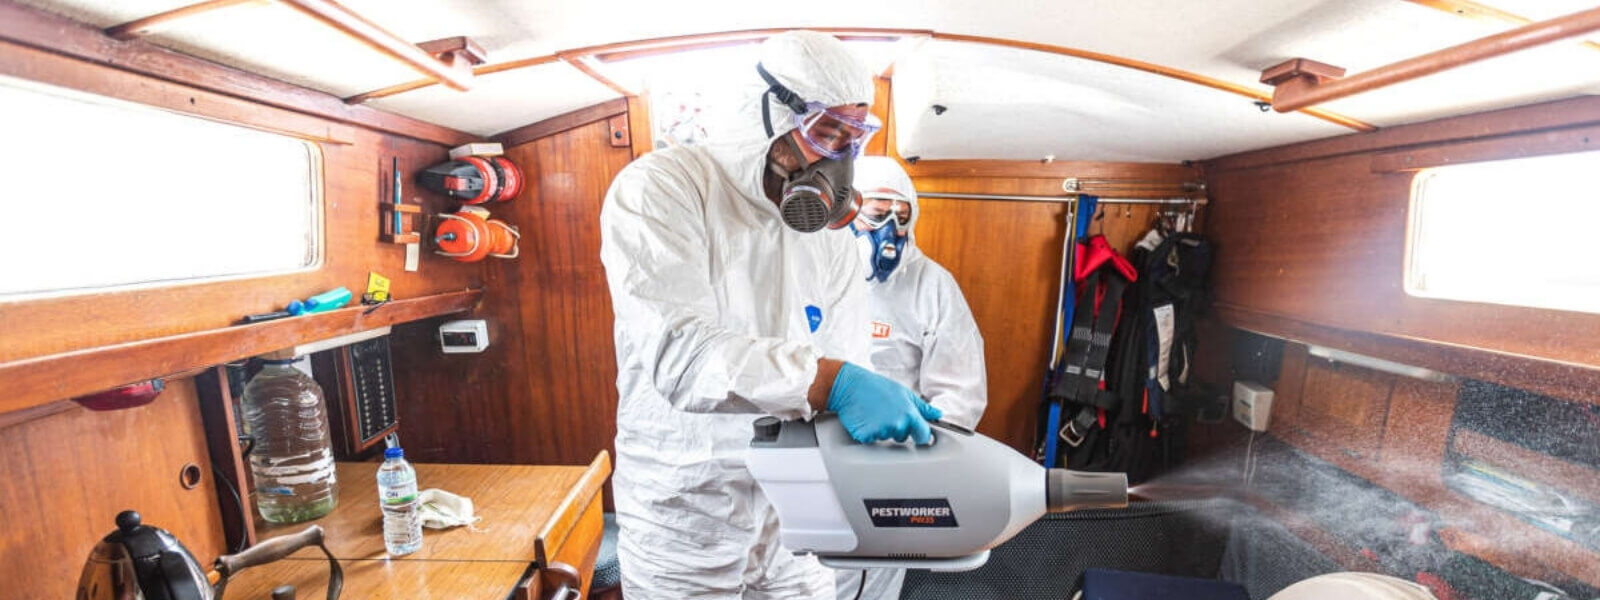 Gulets, daily cleaning and disinfections after Covid-19 pandemic